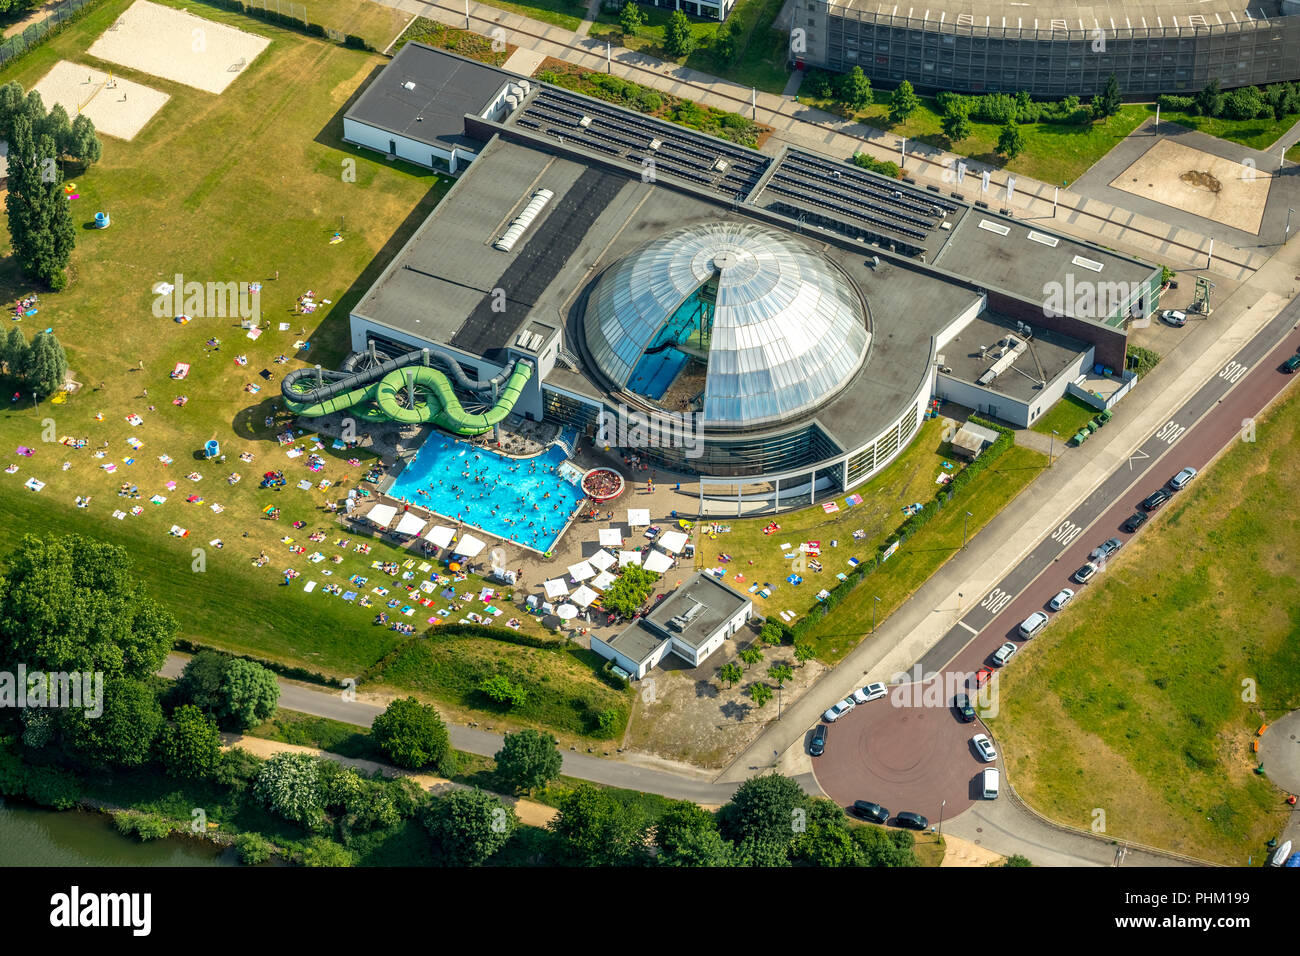 Schwimmbad Oberhausen Aquapark Oberhausen Gmbh High Resolution Stock Photography And Images - Alamy